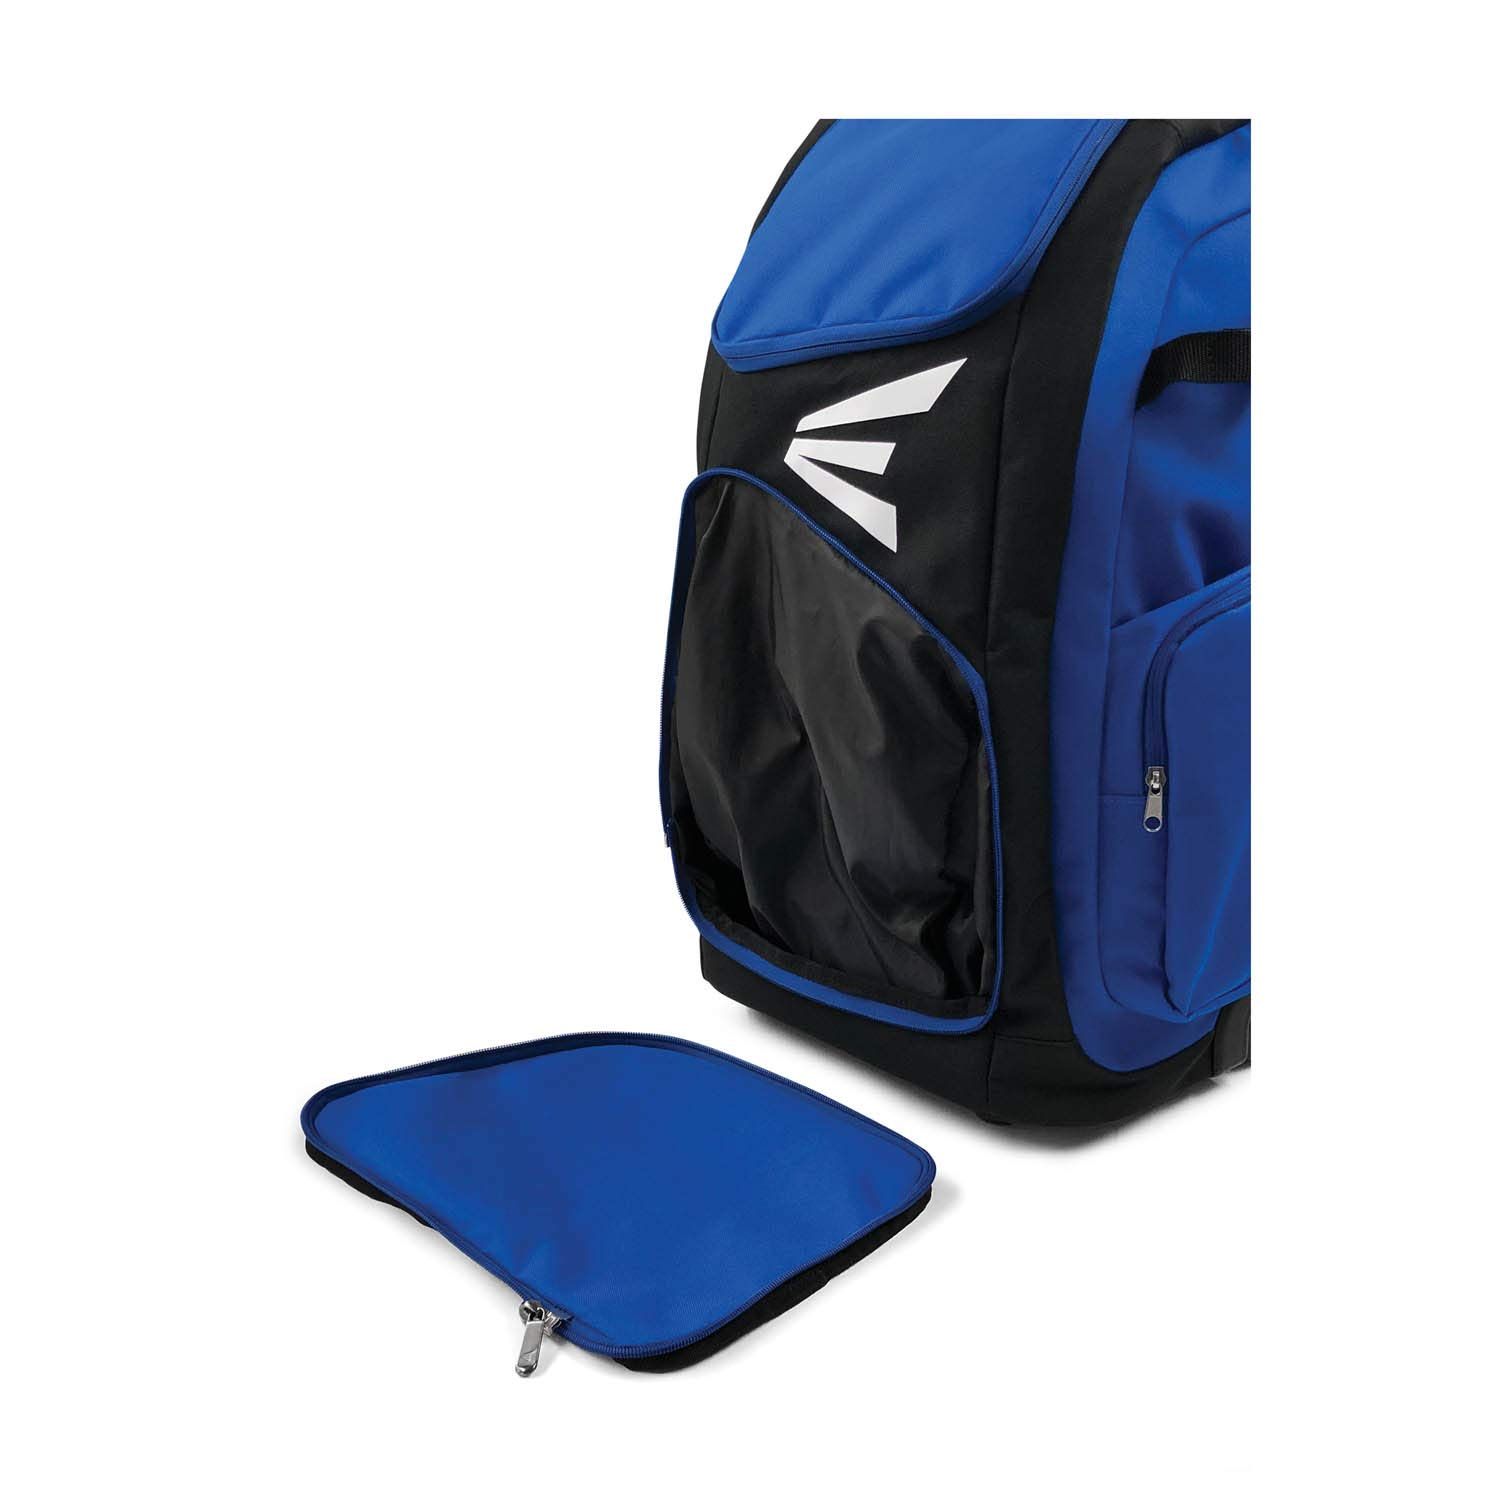 EASTON TRAVELER Bat & Equipment Wheeled Bag | Baseball Softball | 2019 | Royal | 4 Bat Sleeves | Vented Gear & Shoe Compartments | 2 Side Zippered Pockets | Telescope Handle | Stands Up | Fence Hook by Easton (Image #4)